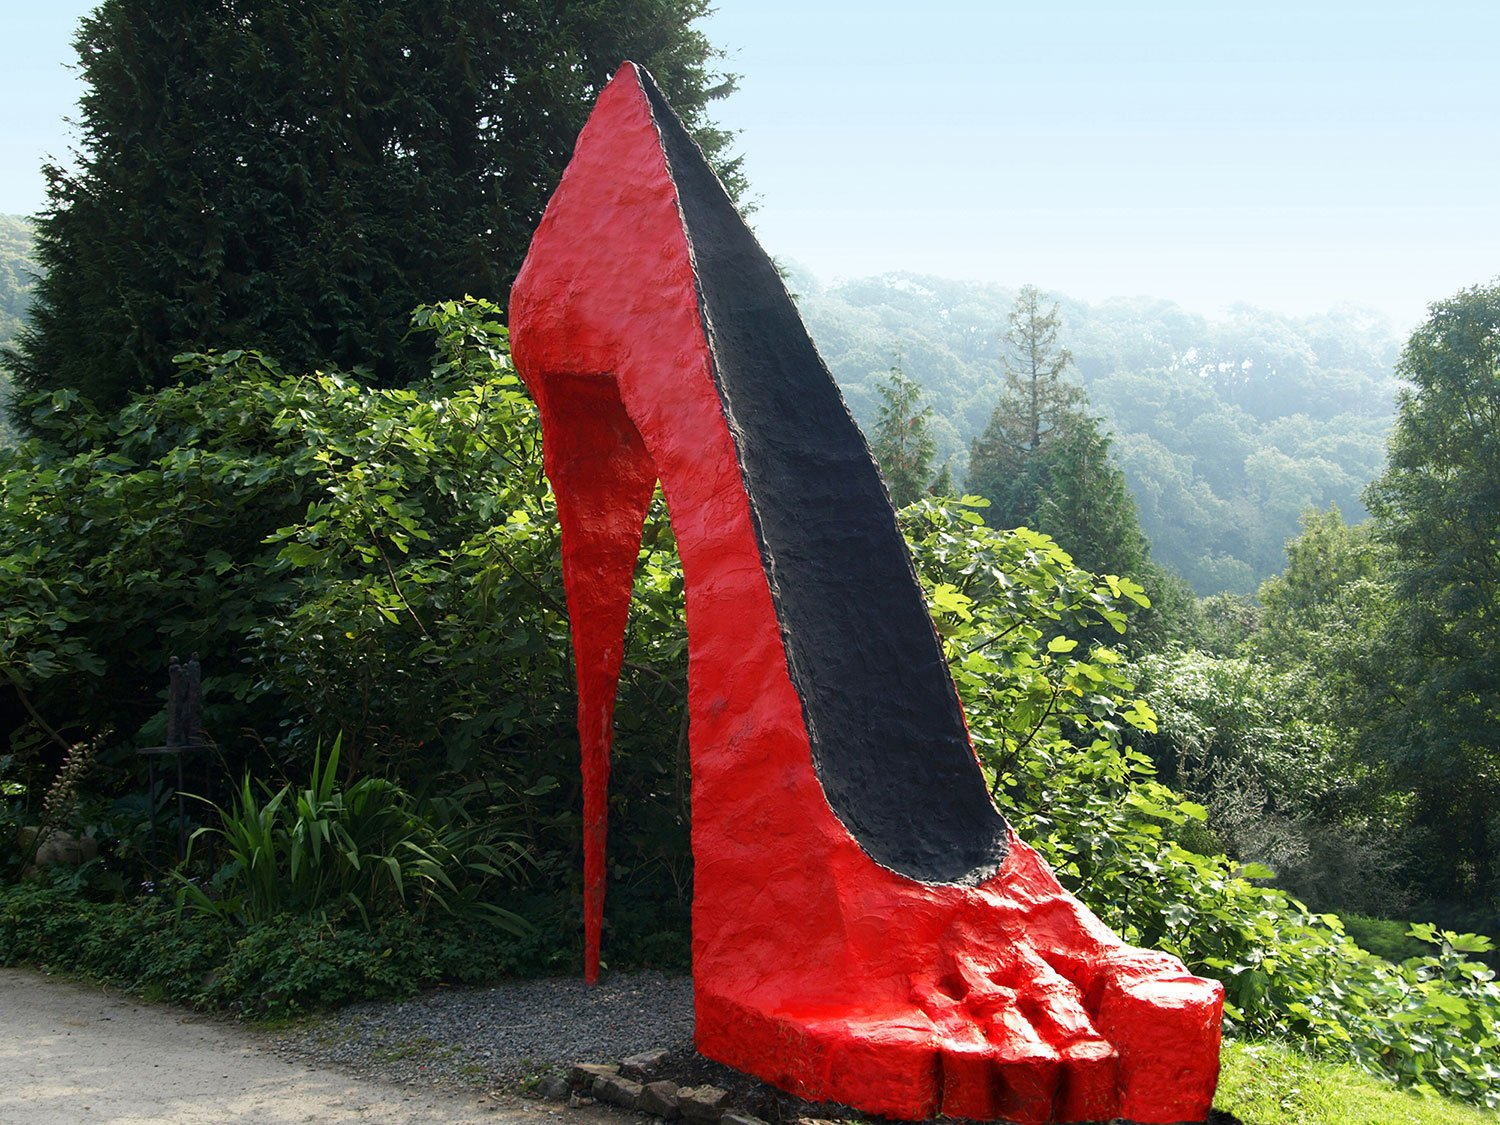 Shoe Sculpture by Greta Berlin